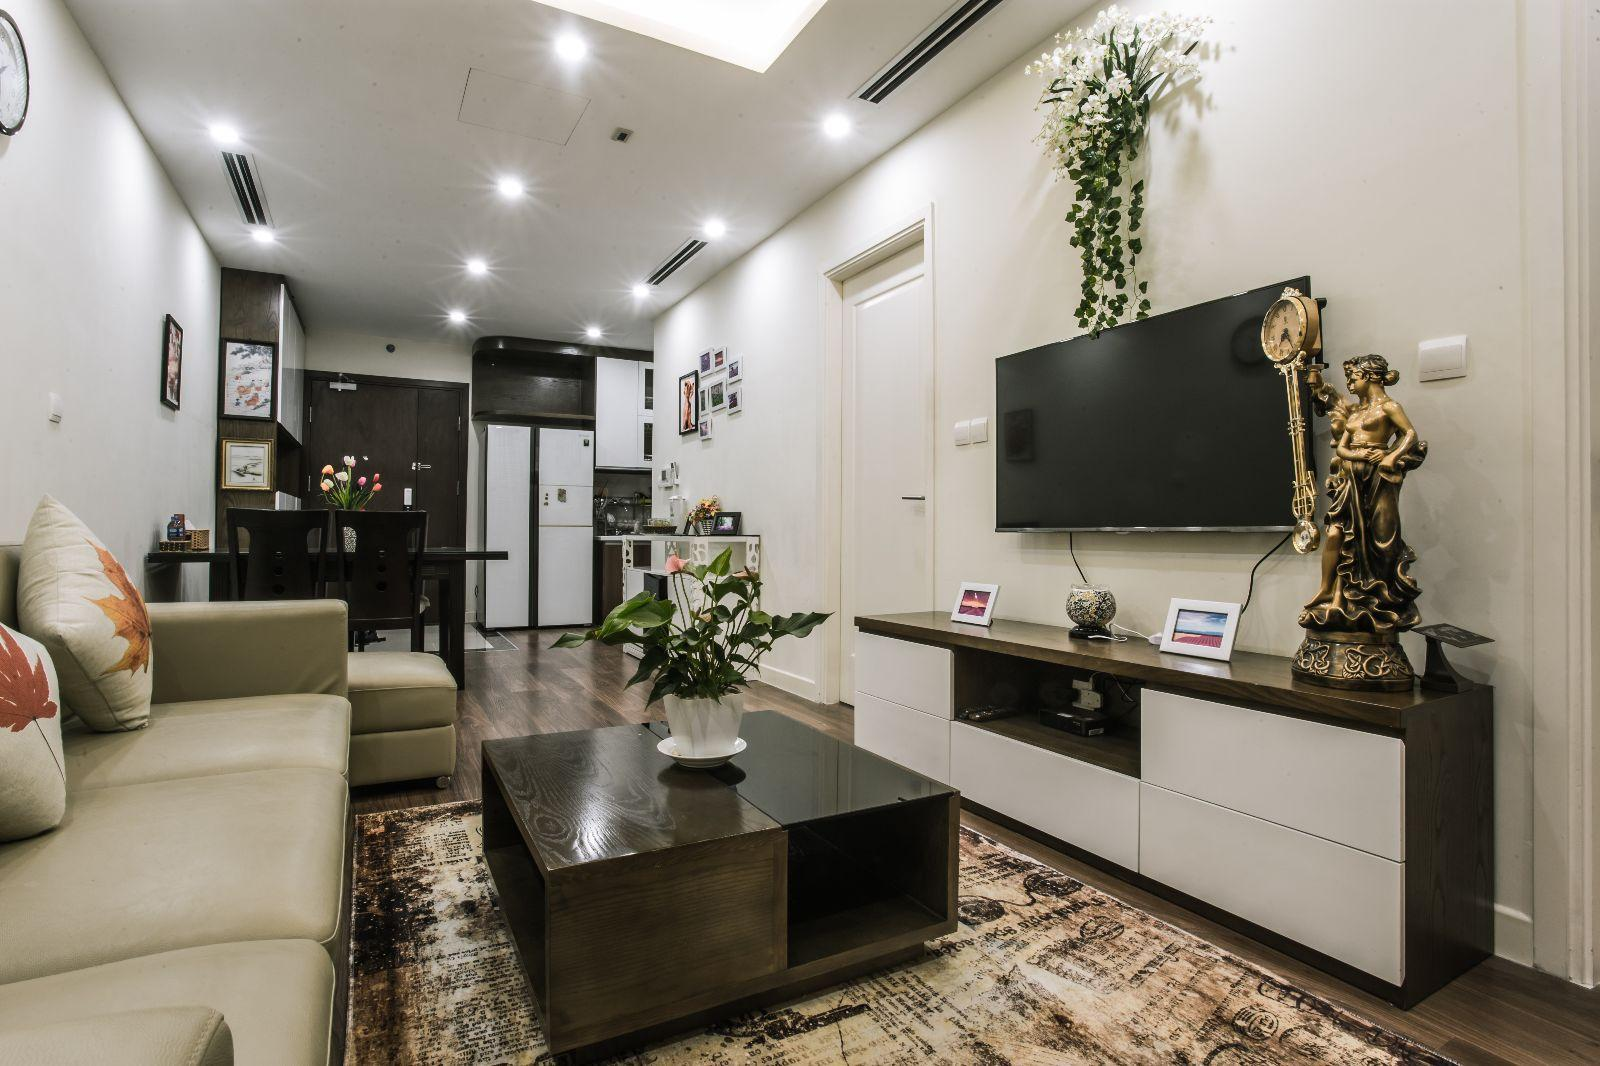 VISTAY4 2BR  Sts